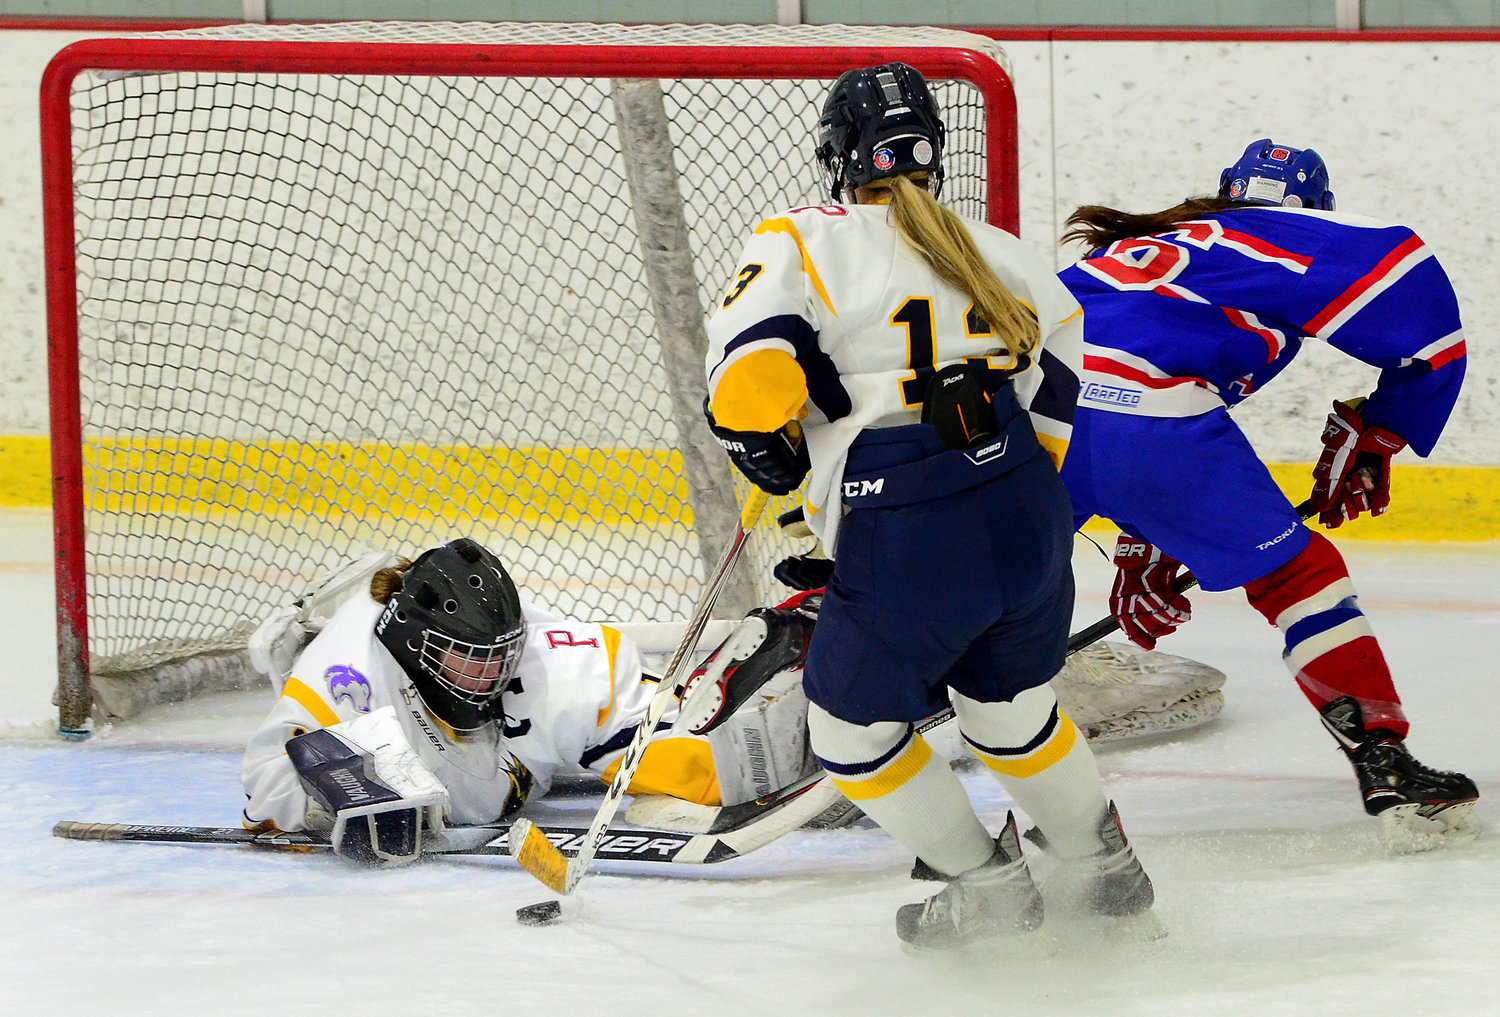 Eagles co-captain and senior goaltender Ellee Kopecky makes a save as teammate Alexandra Phelps collects the puck.